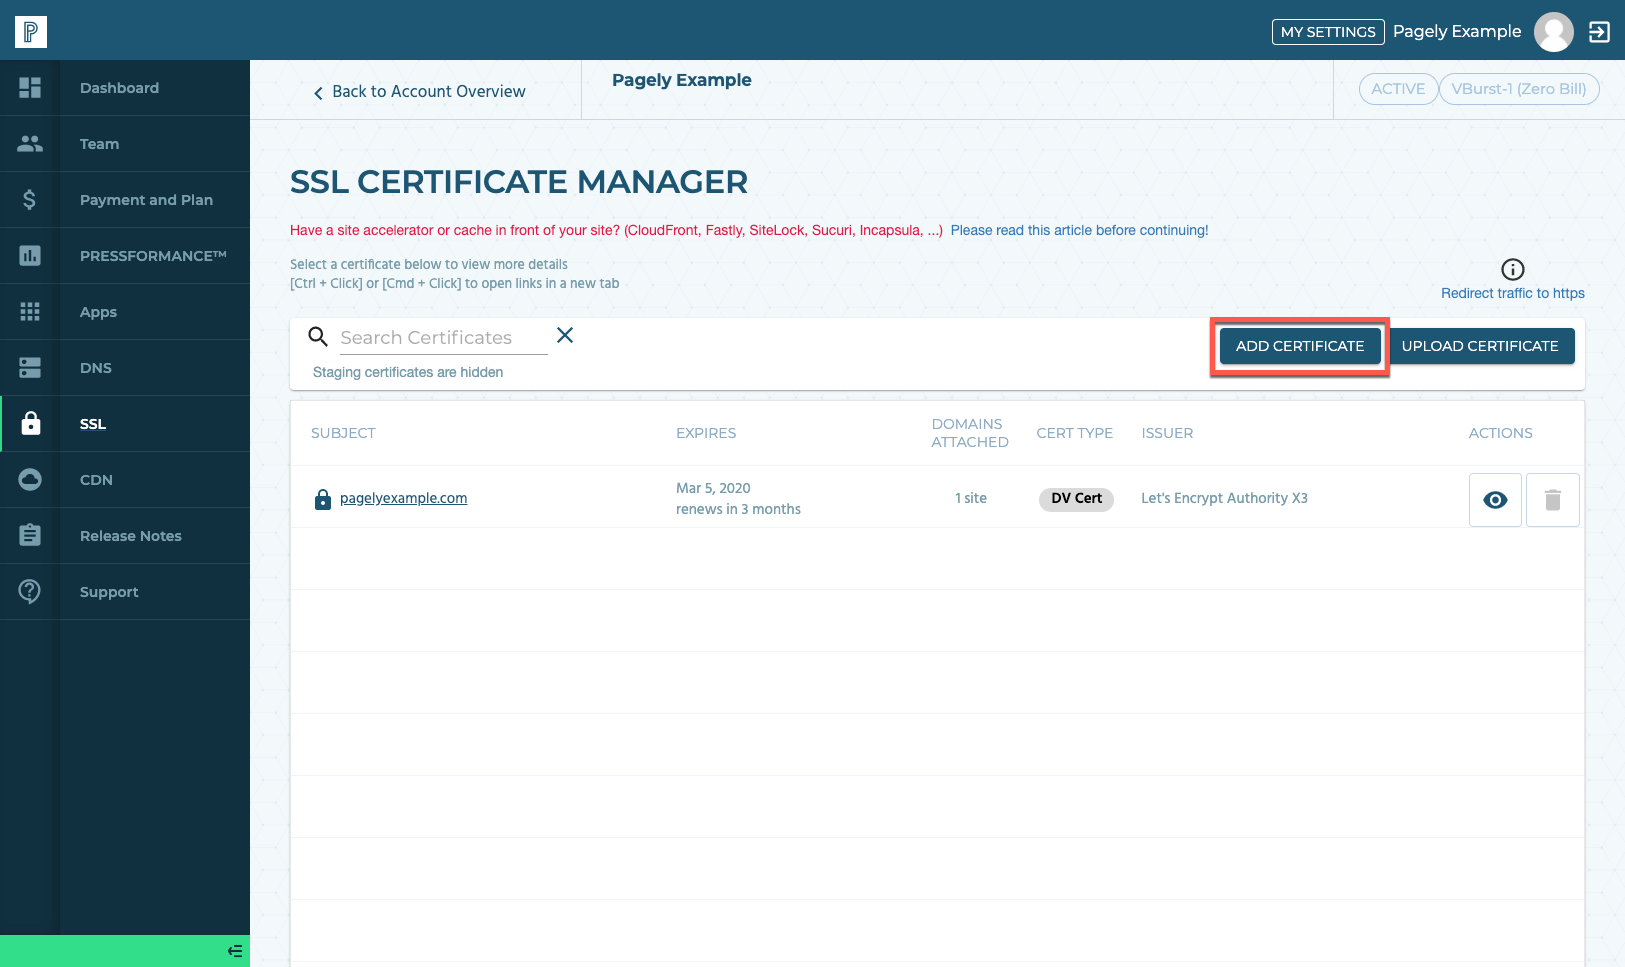 ssl-cert-manager-add-cert.png